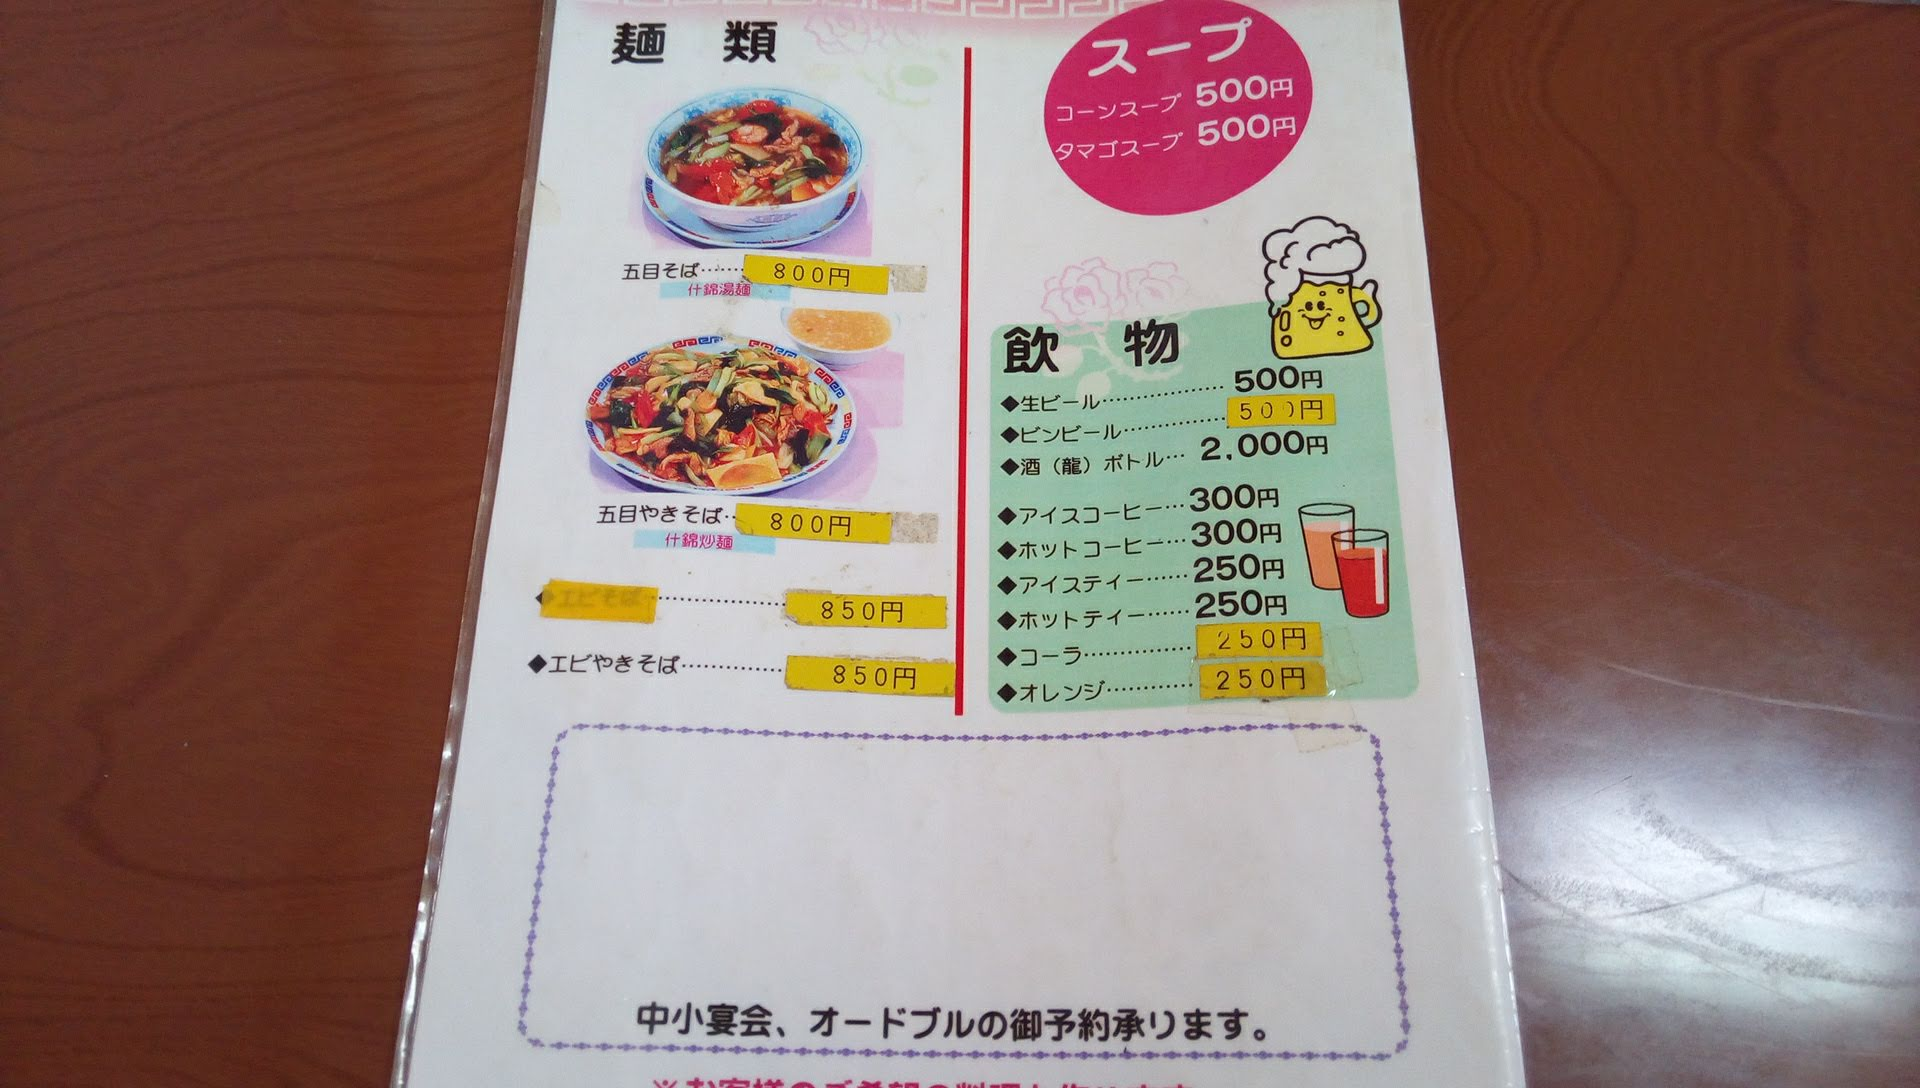 the menu of Nanryuuen 2